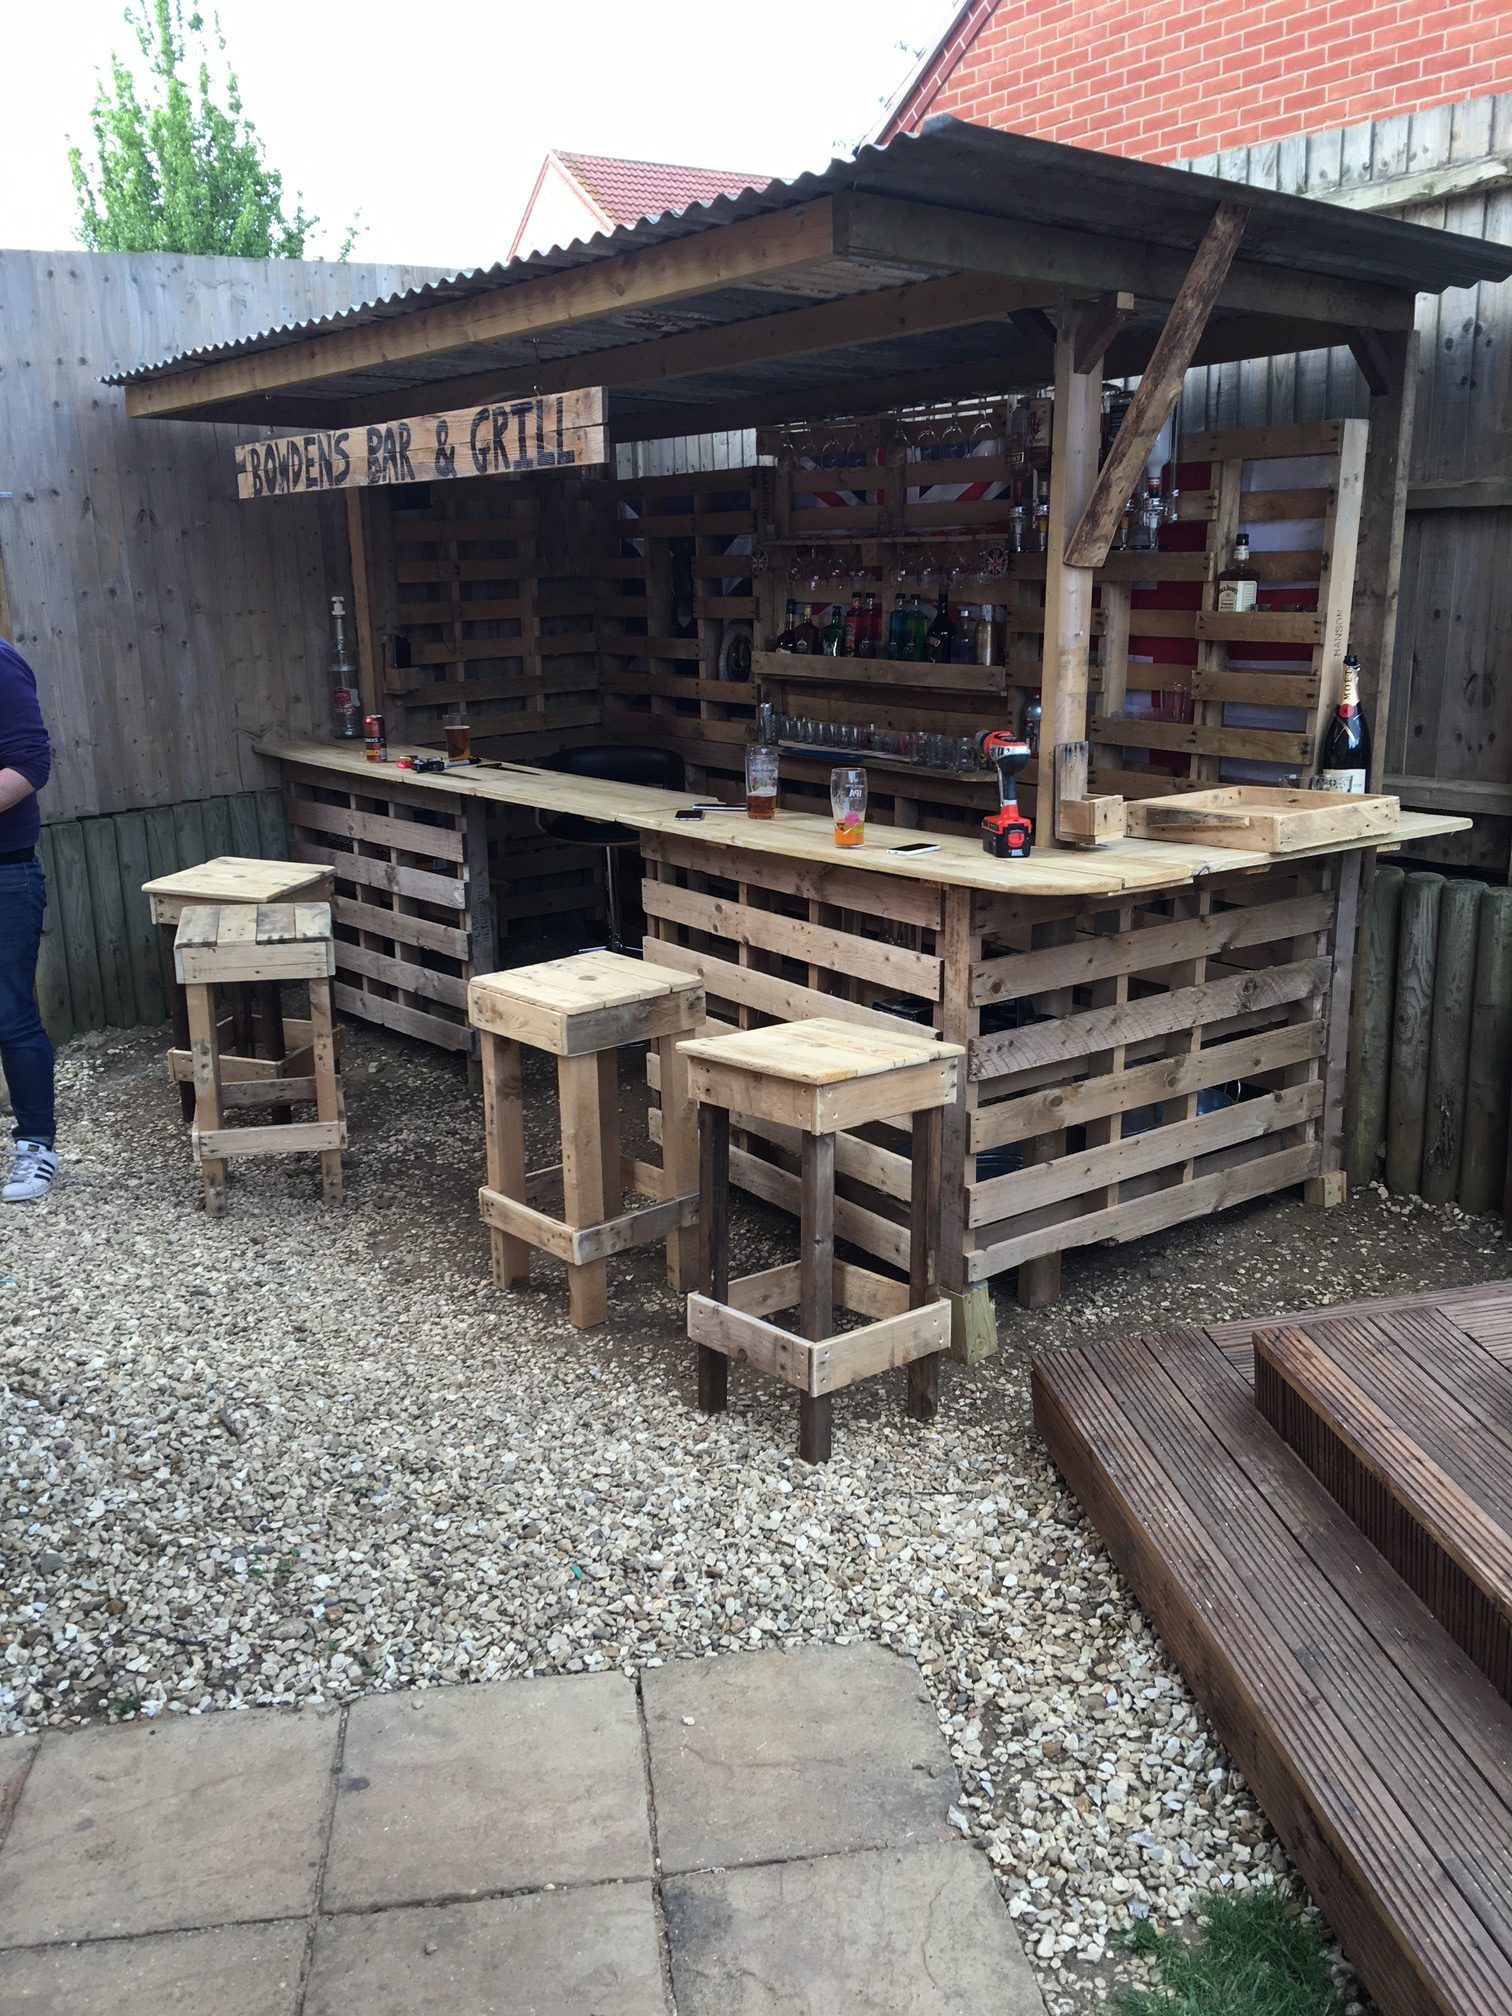 How To Turn A Pile Of Old Pallets Into A Cool Outdoor Bar Fit For Any Garden .